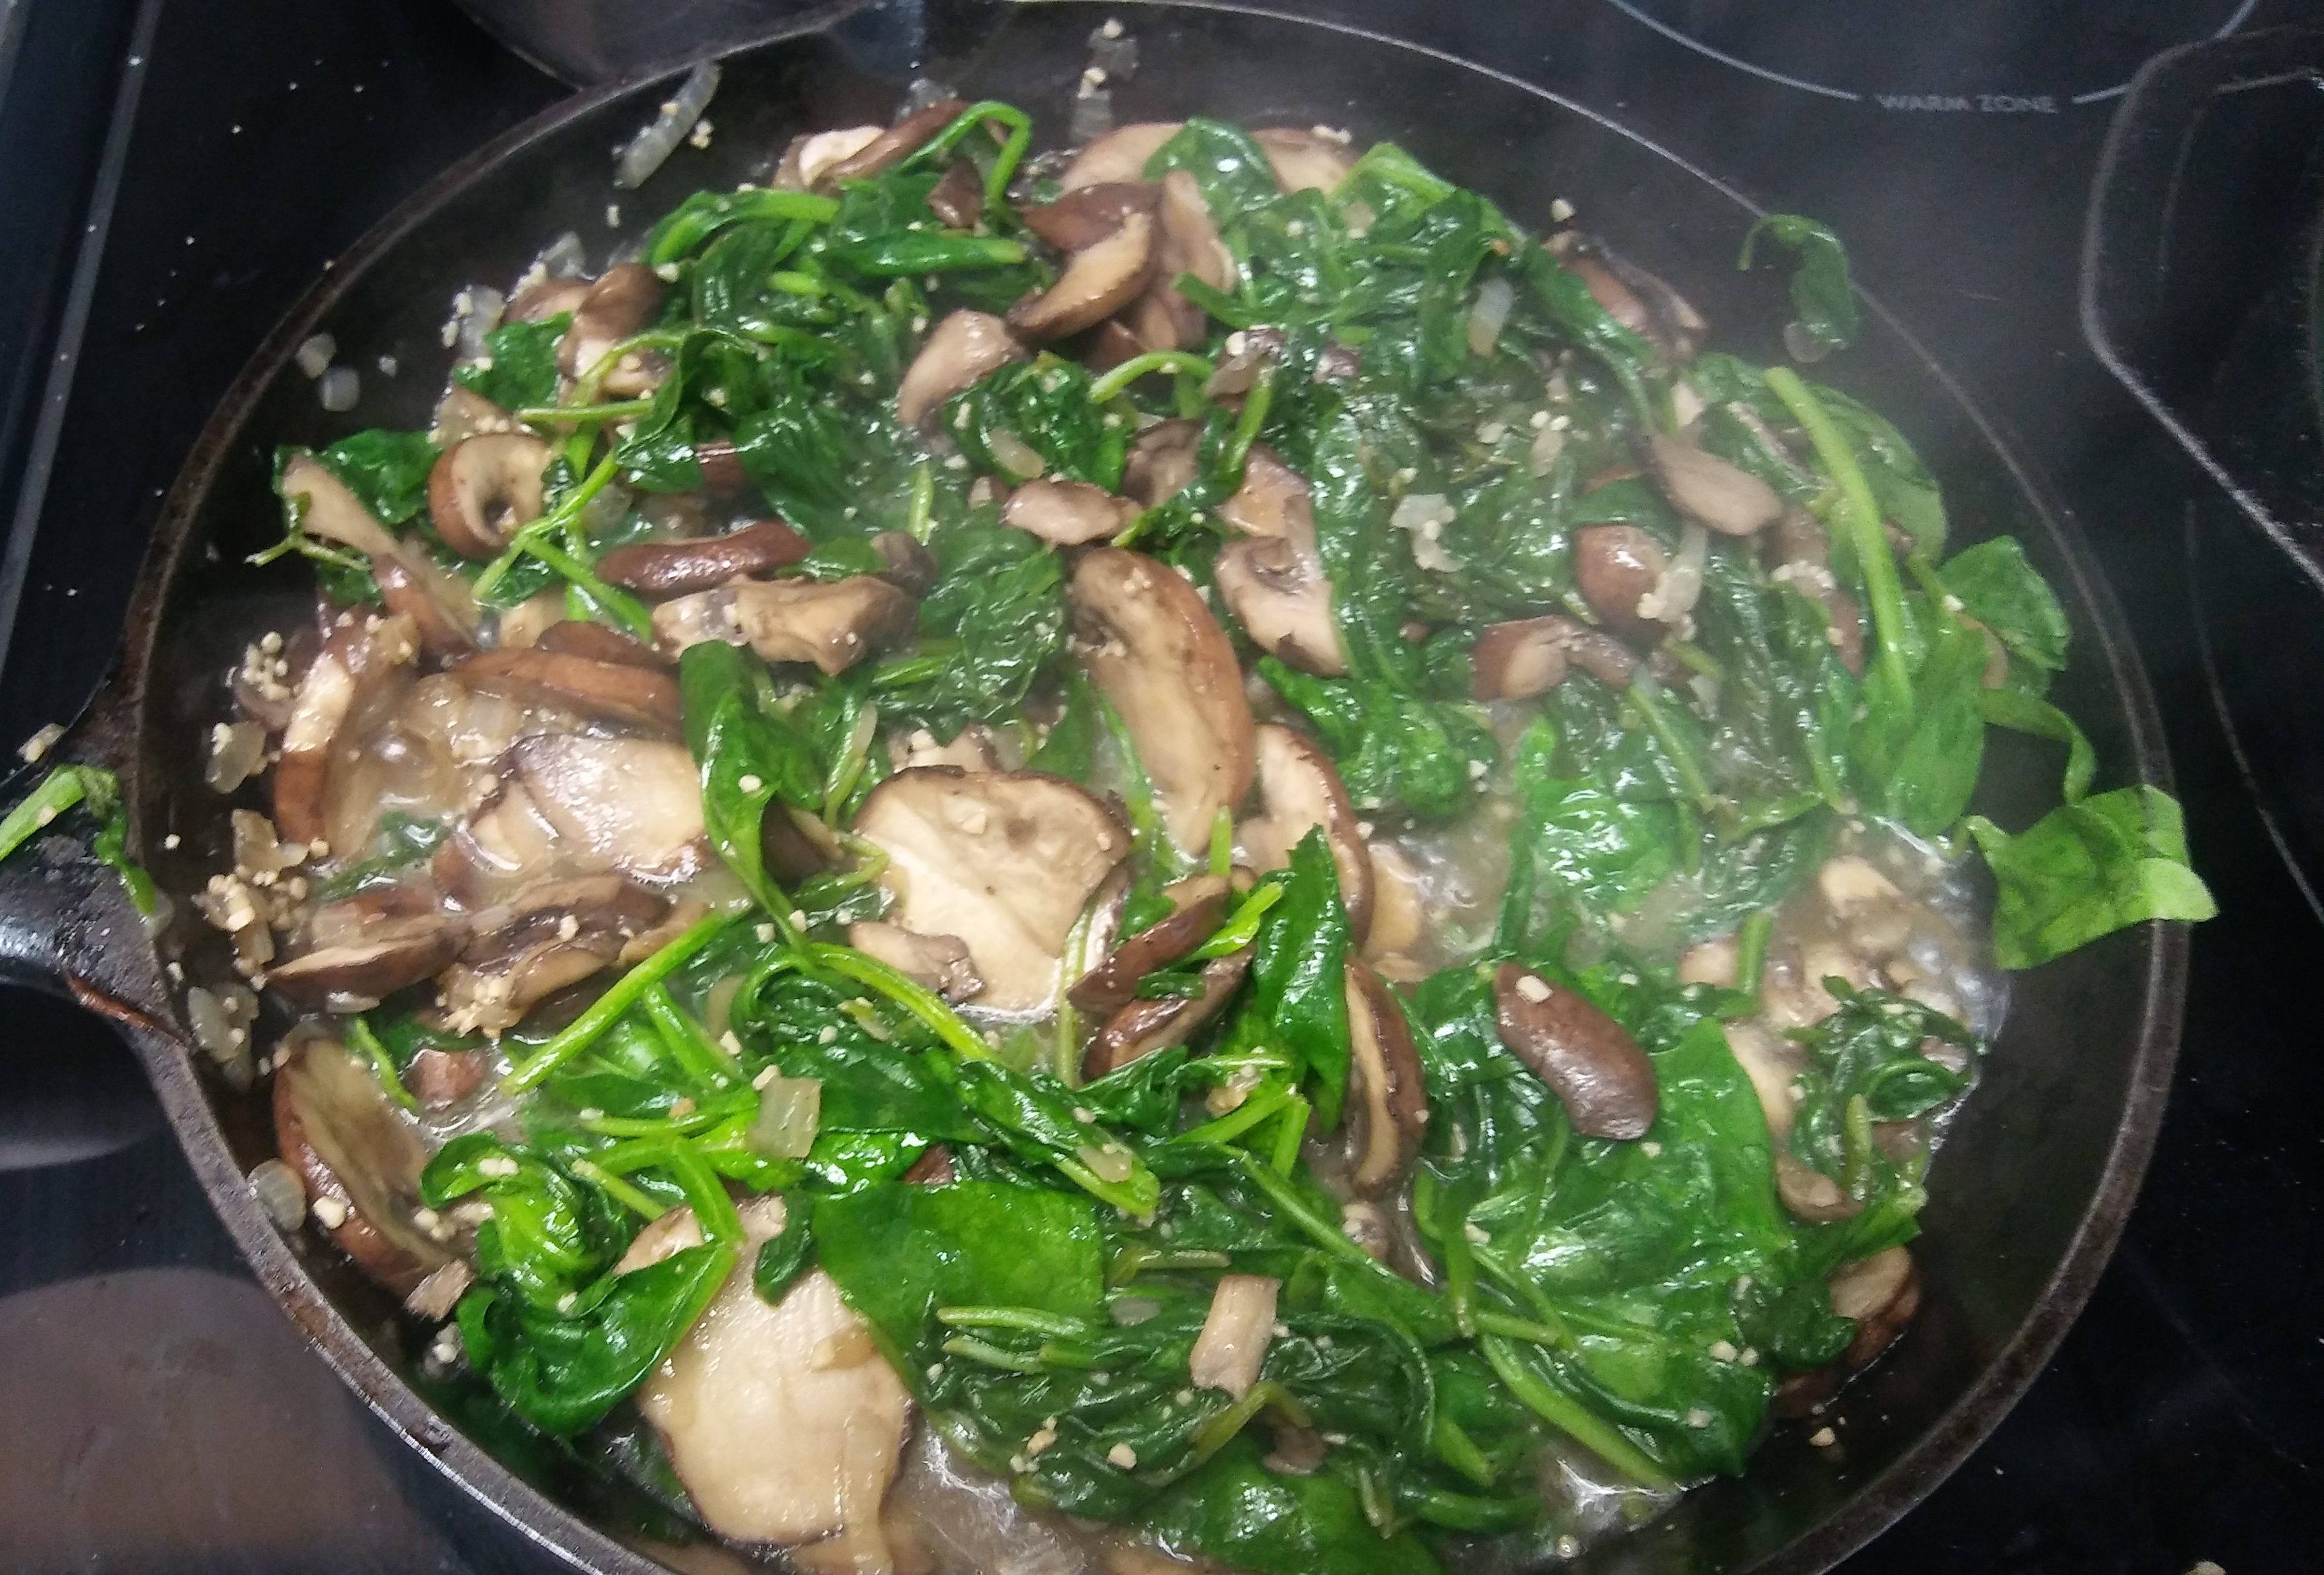 Spinach And Mushroom Side Dish - Healthy And Taste Great!